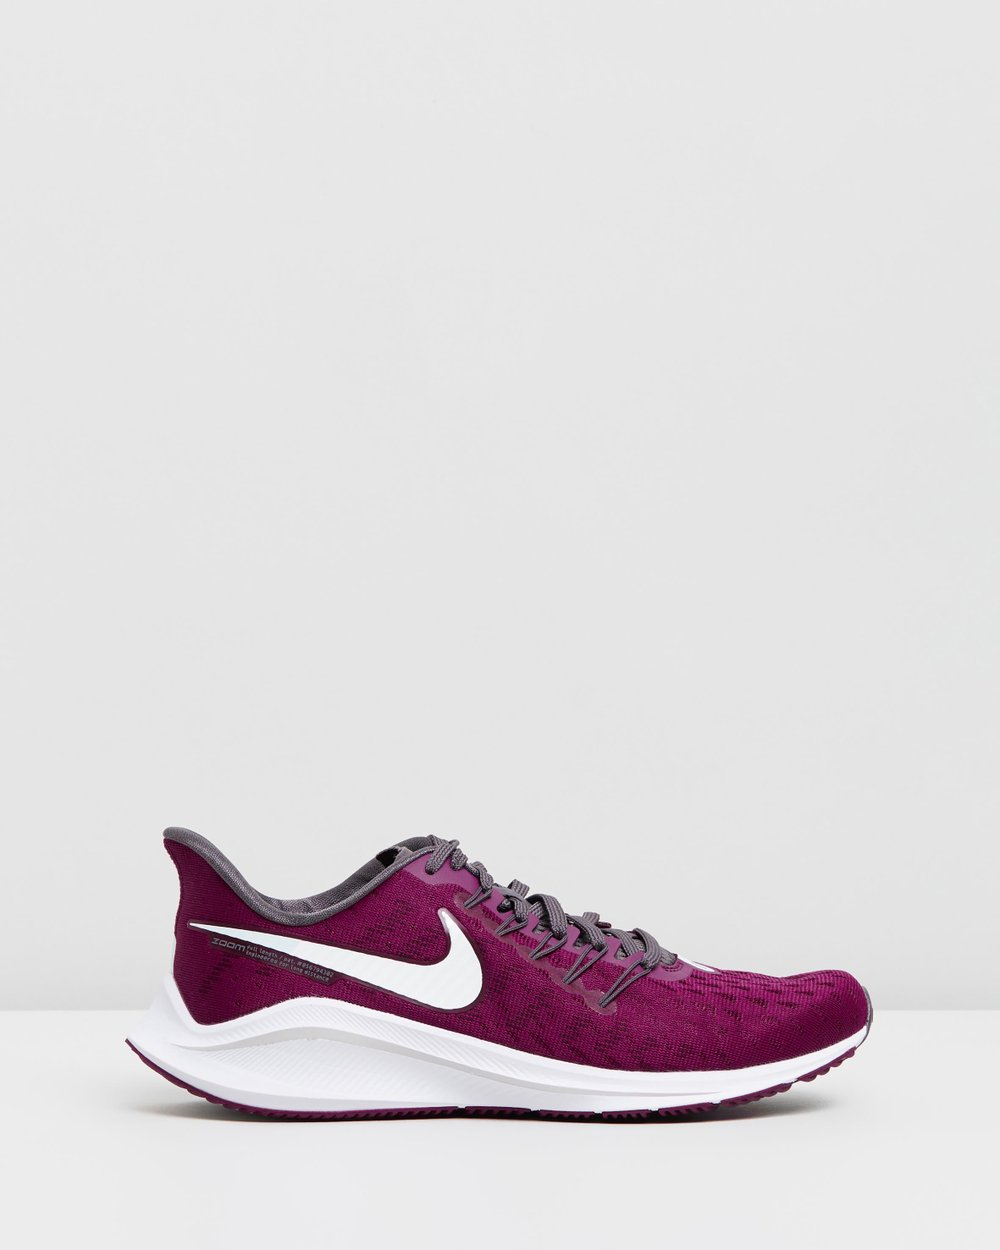 614c8625c46b1 Air Zoom Vomero 14 - Women s by Nike Online